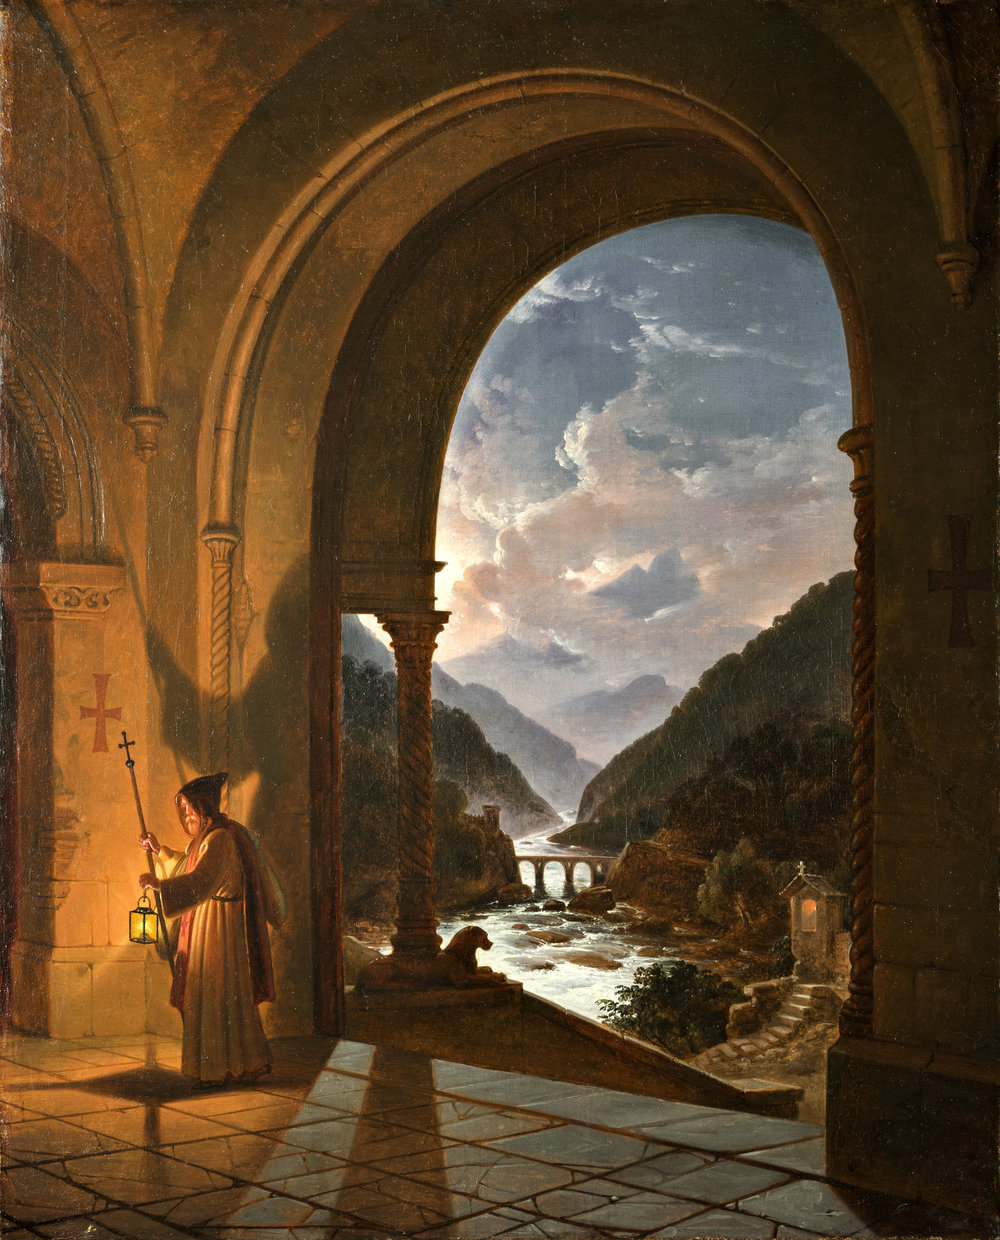 FRANZ LUDWIG CASTEL (1778 - Berlin - 1856) Hermit at a church in a moonlit landscape Oil on canvas; 24 1/2 x 19 1/2 inches